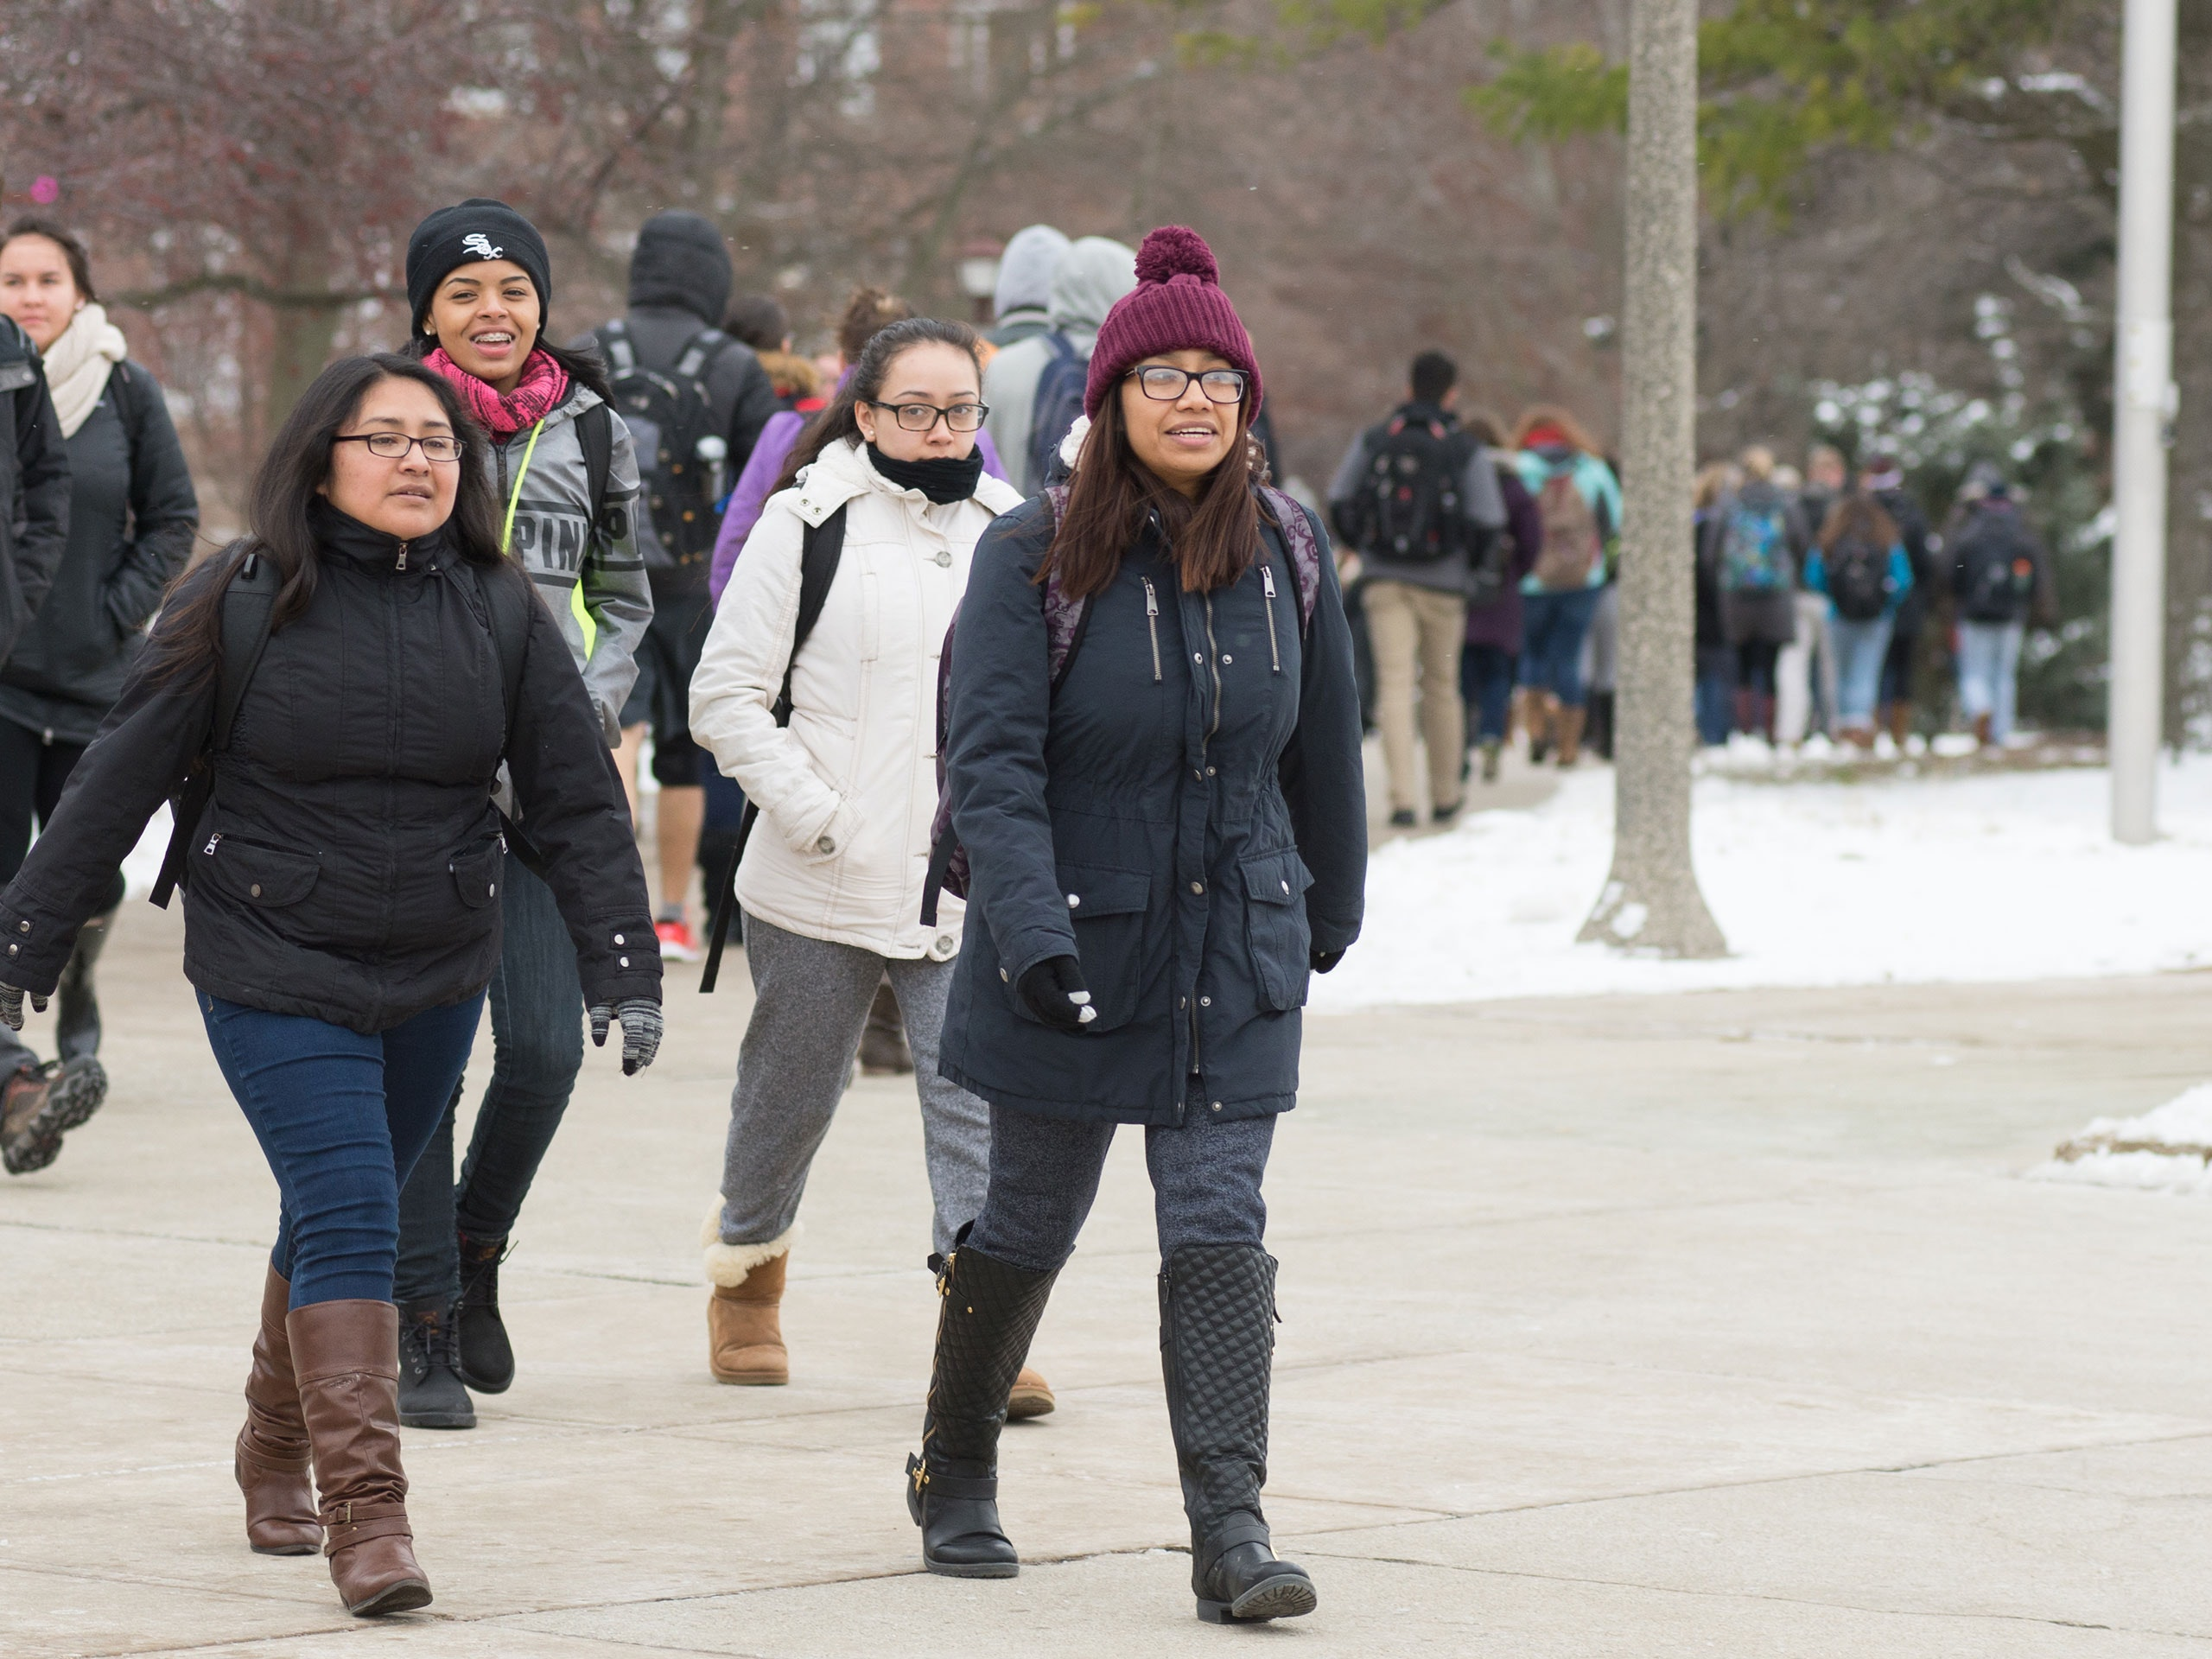 Students walking to class in winter.